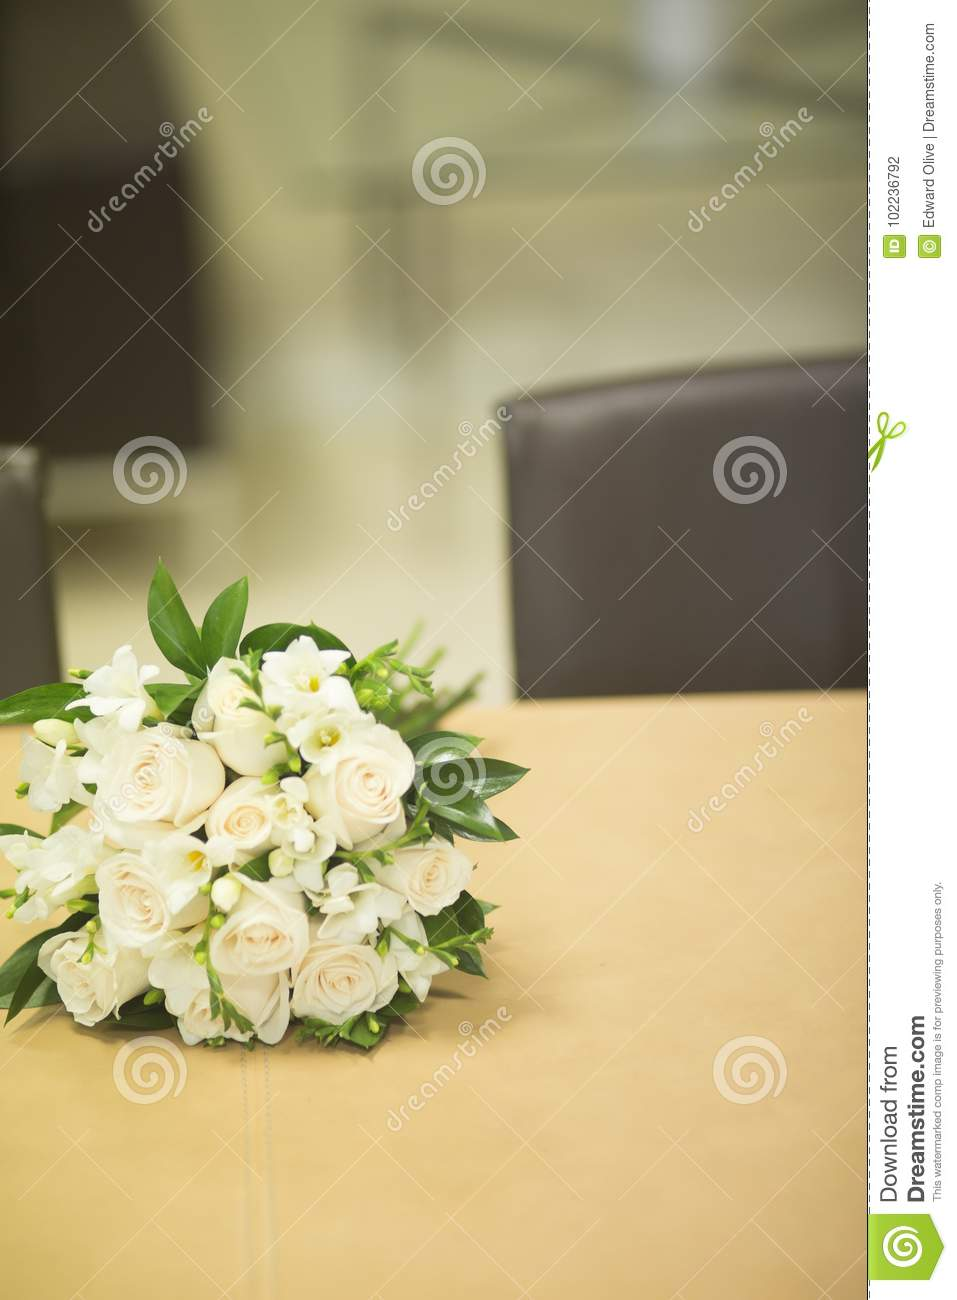 Civil wedding bridal bouquet stock photo image of flower bridal civil non religious wedding ceremony registry office bridal bouquet of roses flowers of the bride izmirmasajfo